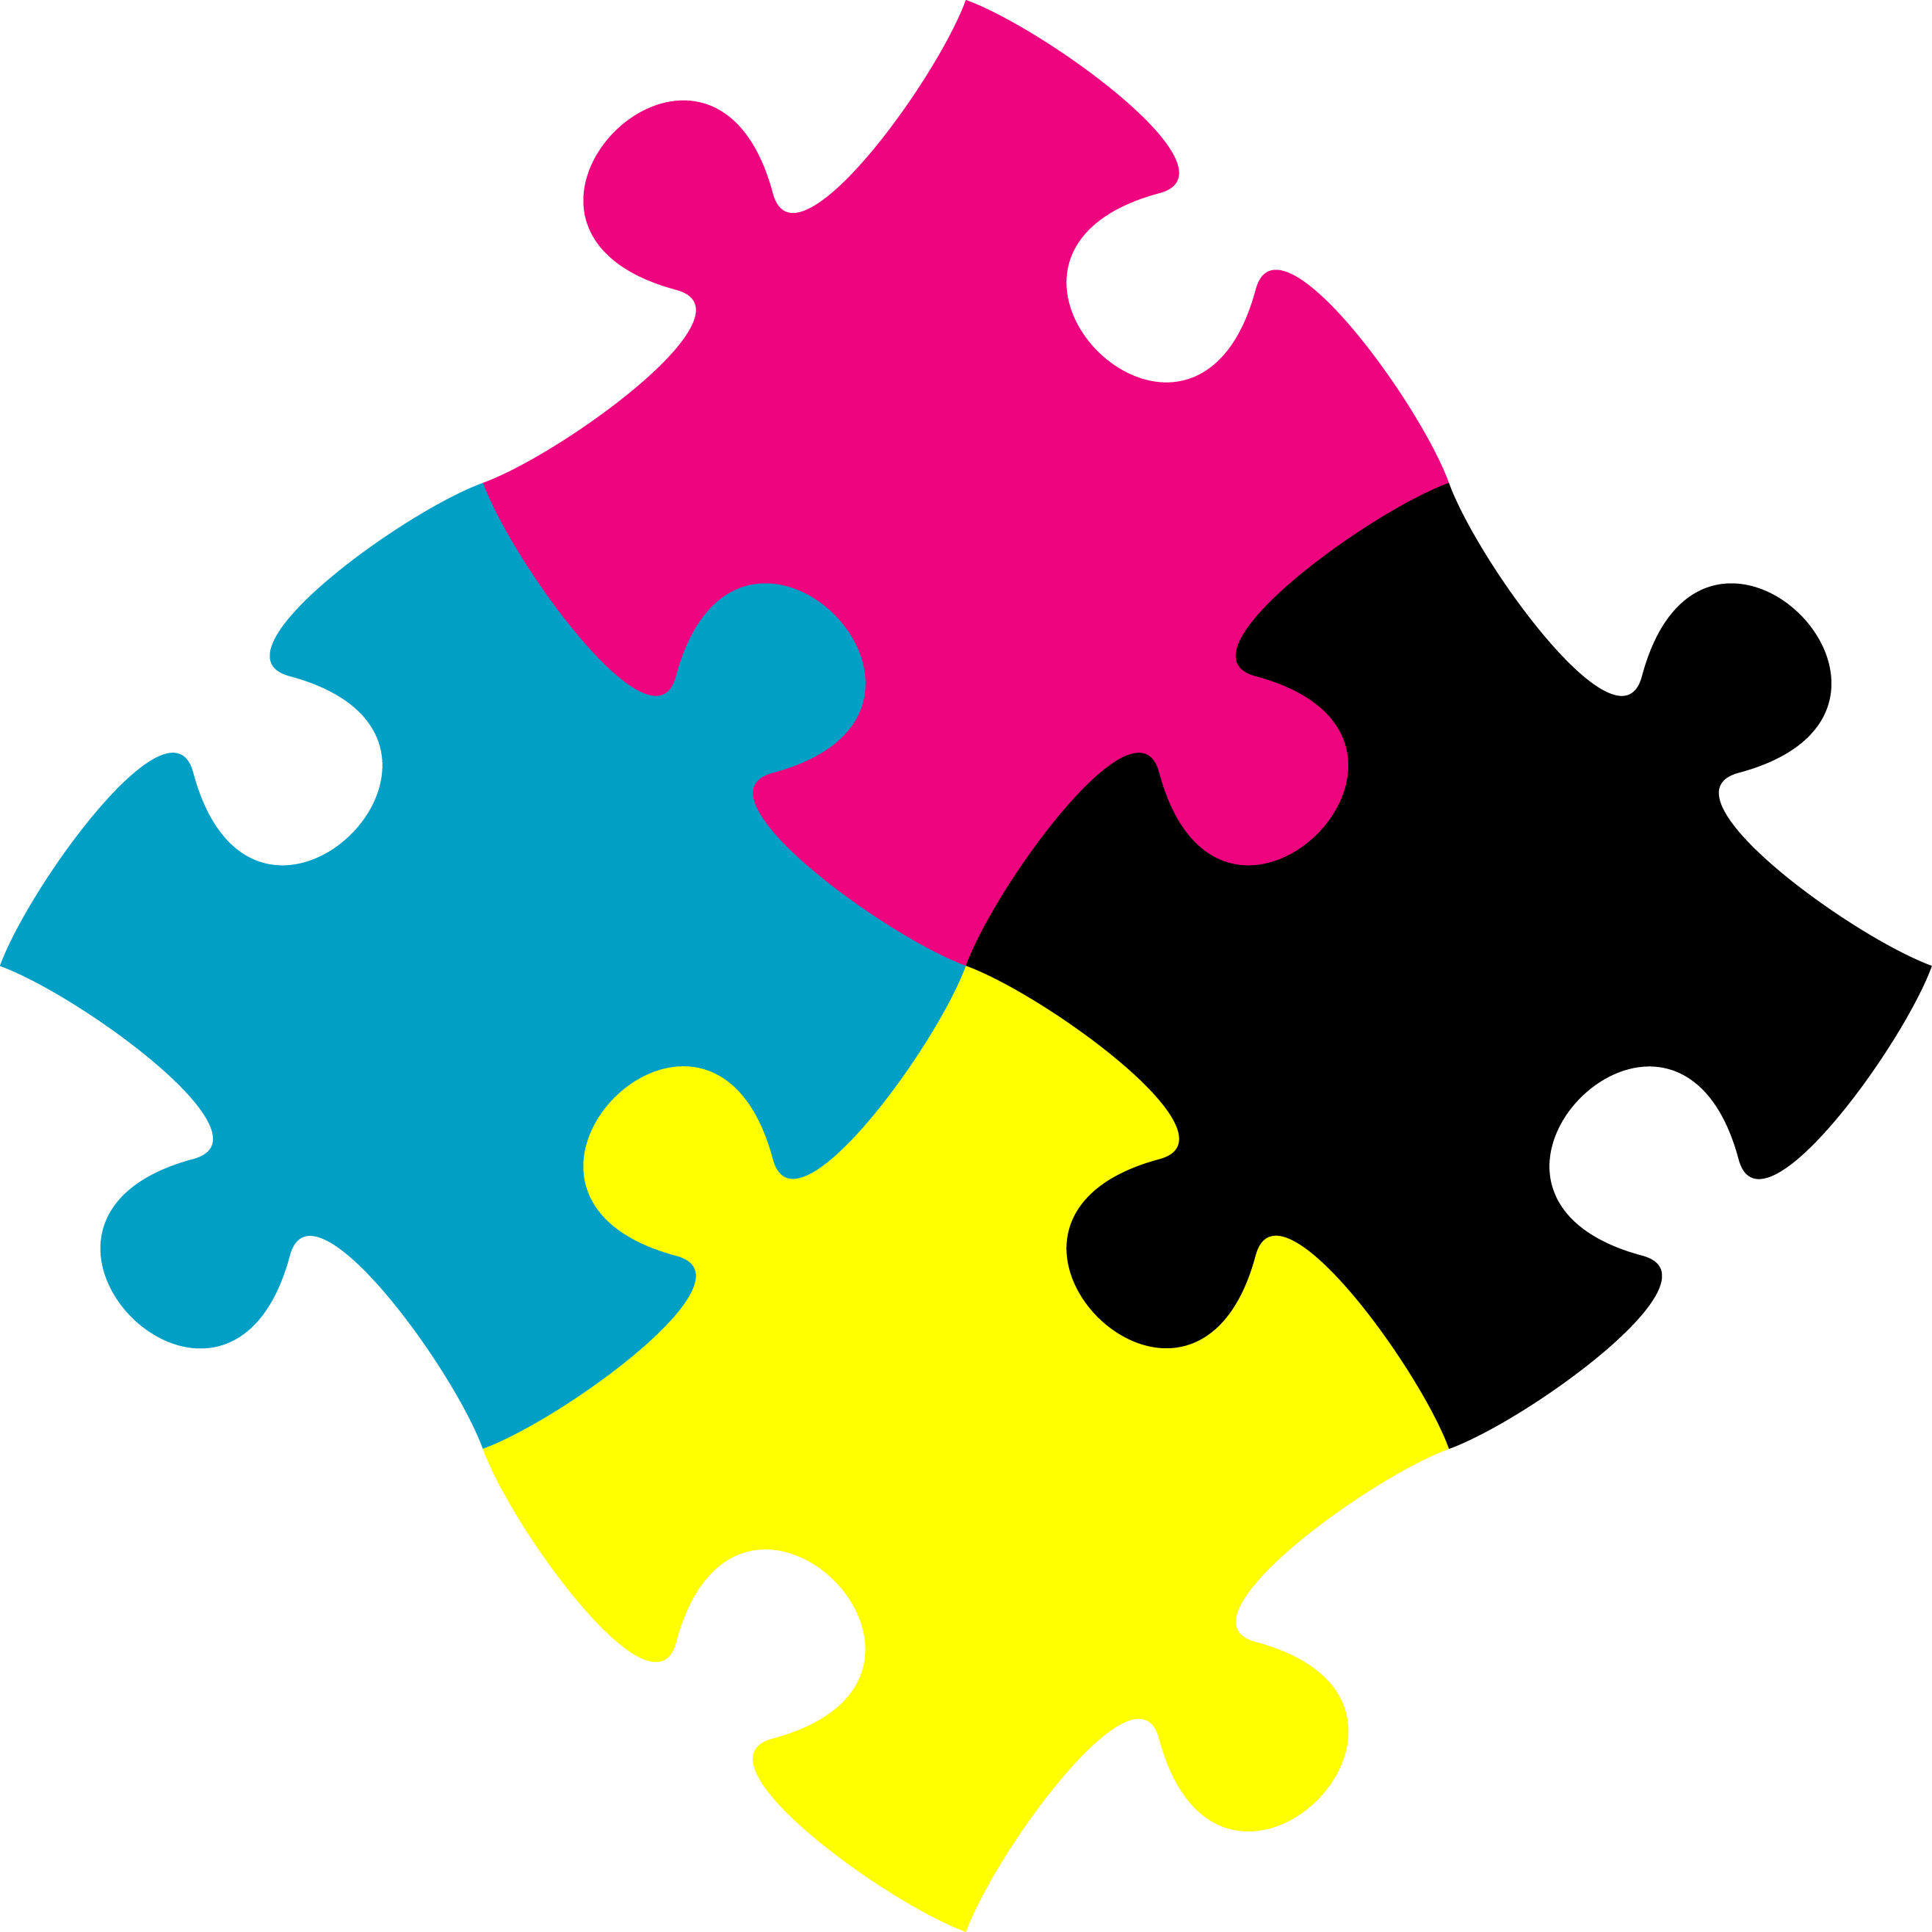 Download Free png PNG Jigsaw Puzzle Pieces Transparent.